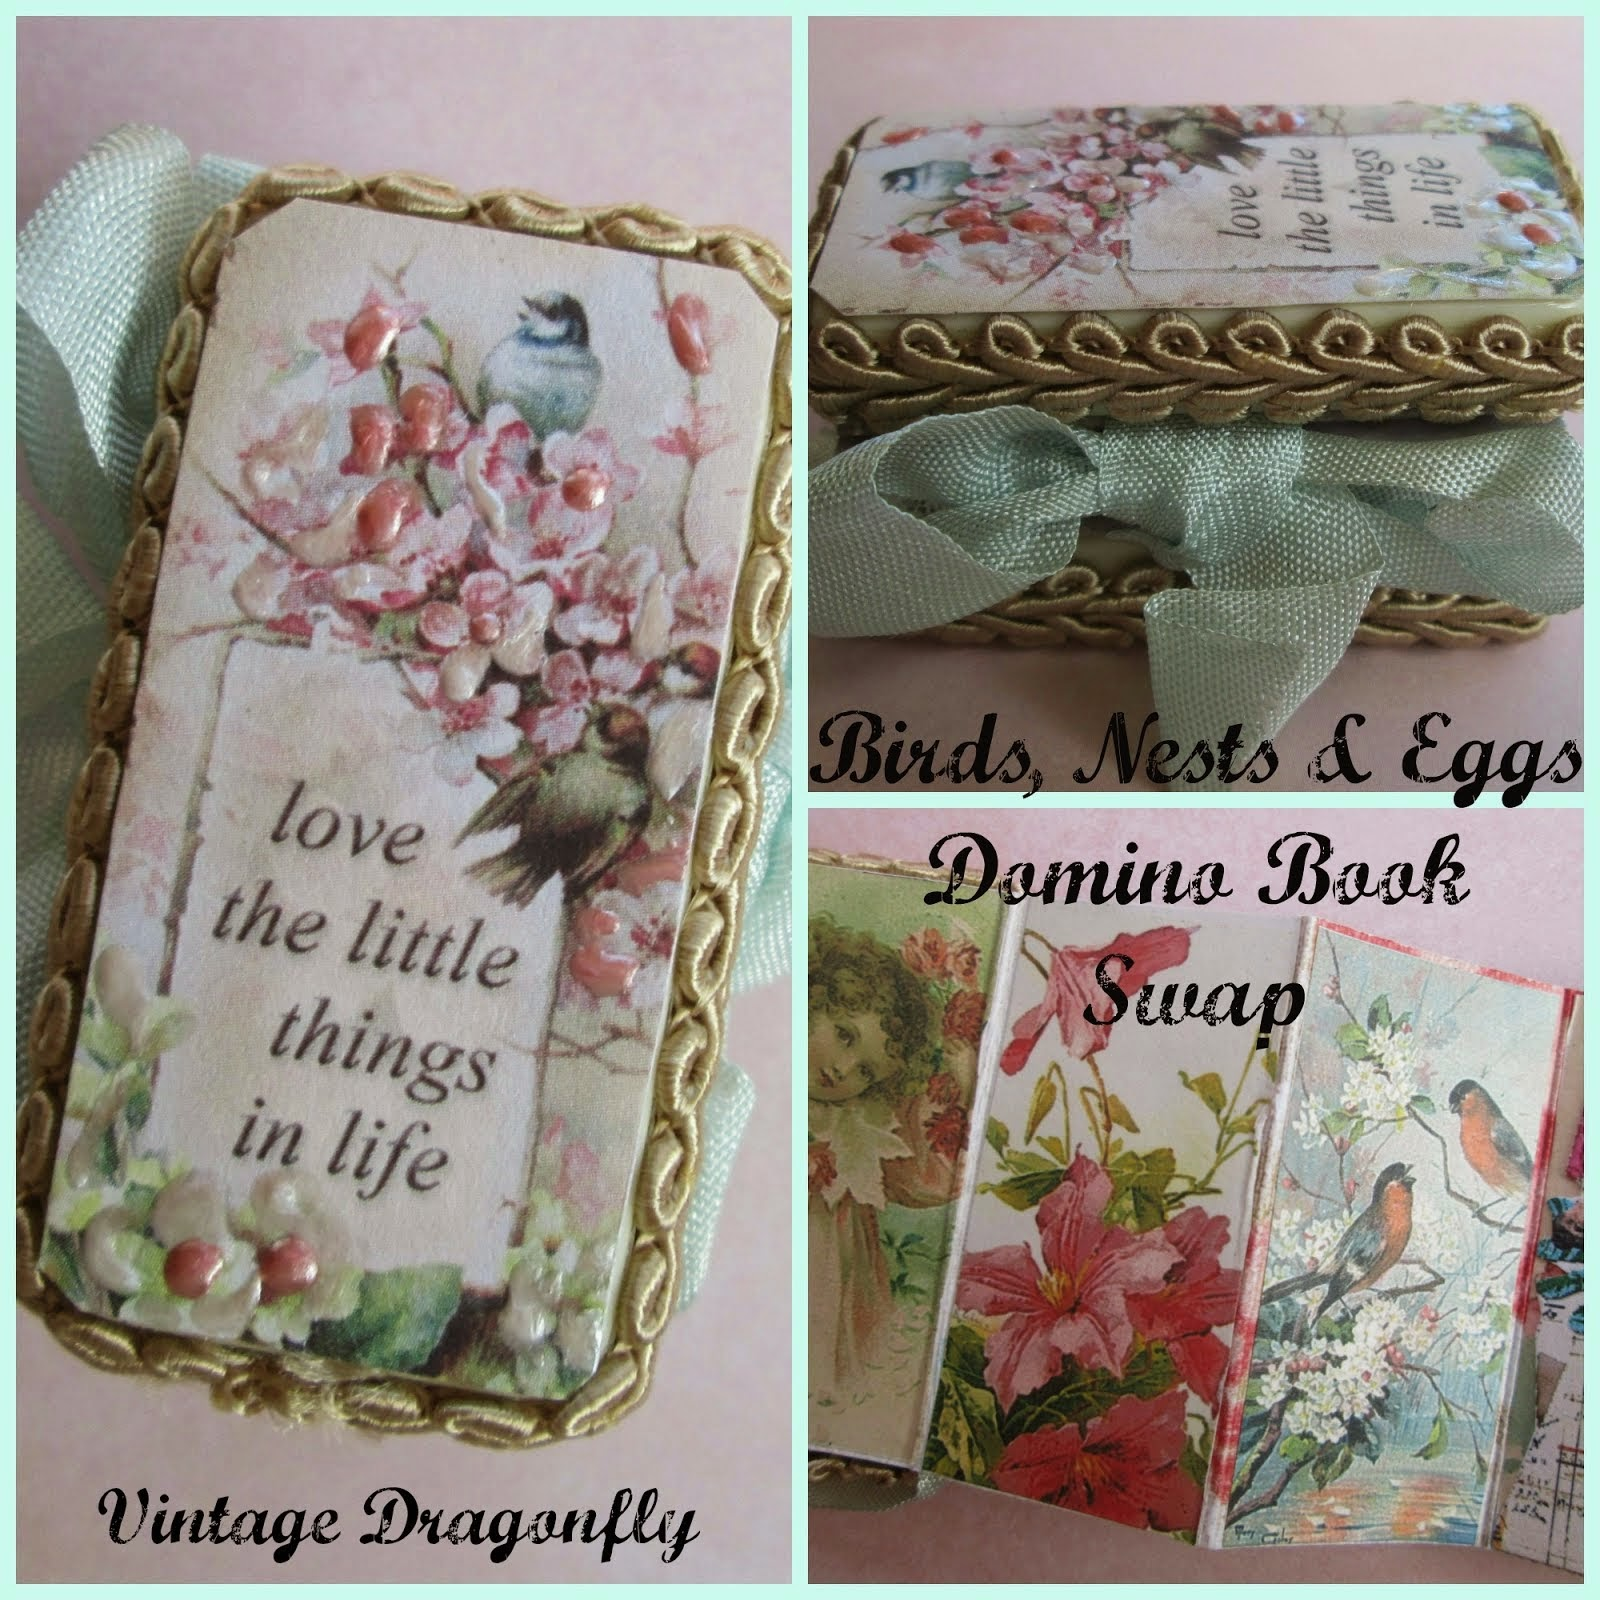 Vintage Dragonfly's  Swap